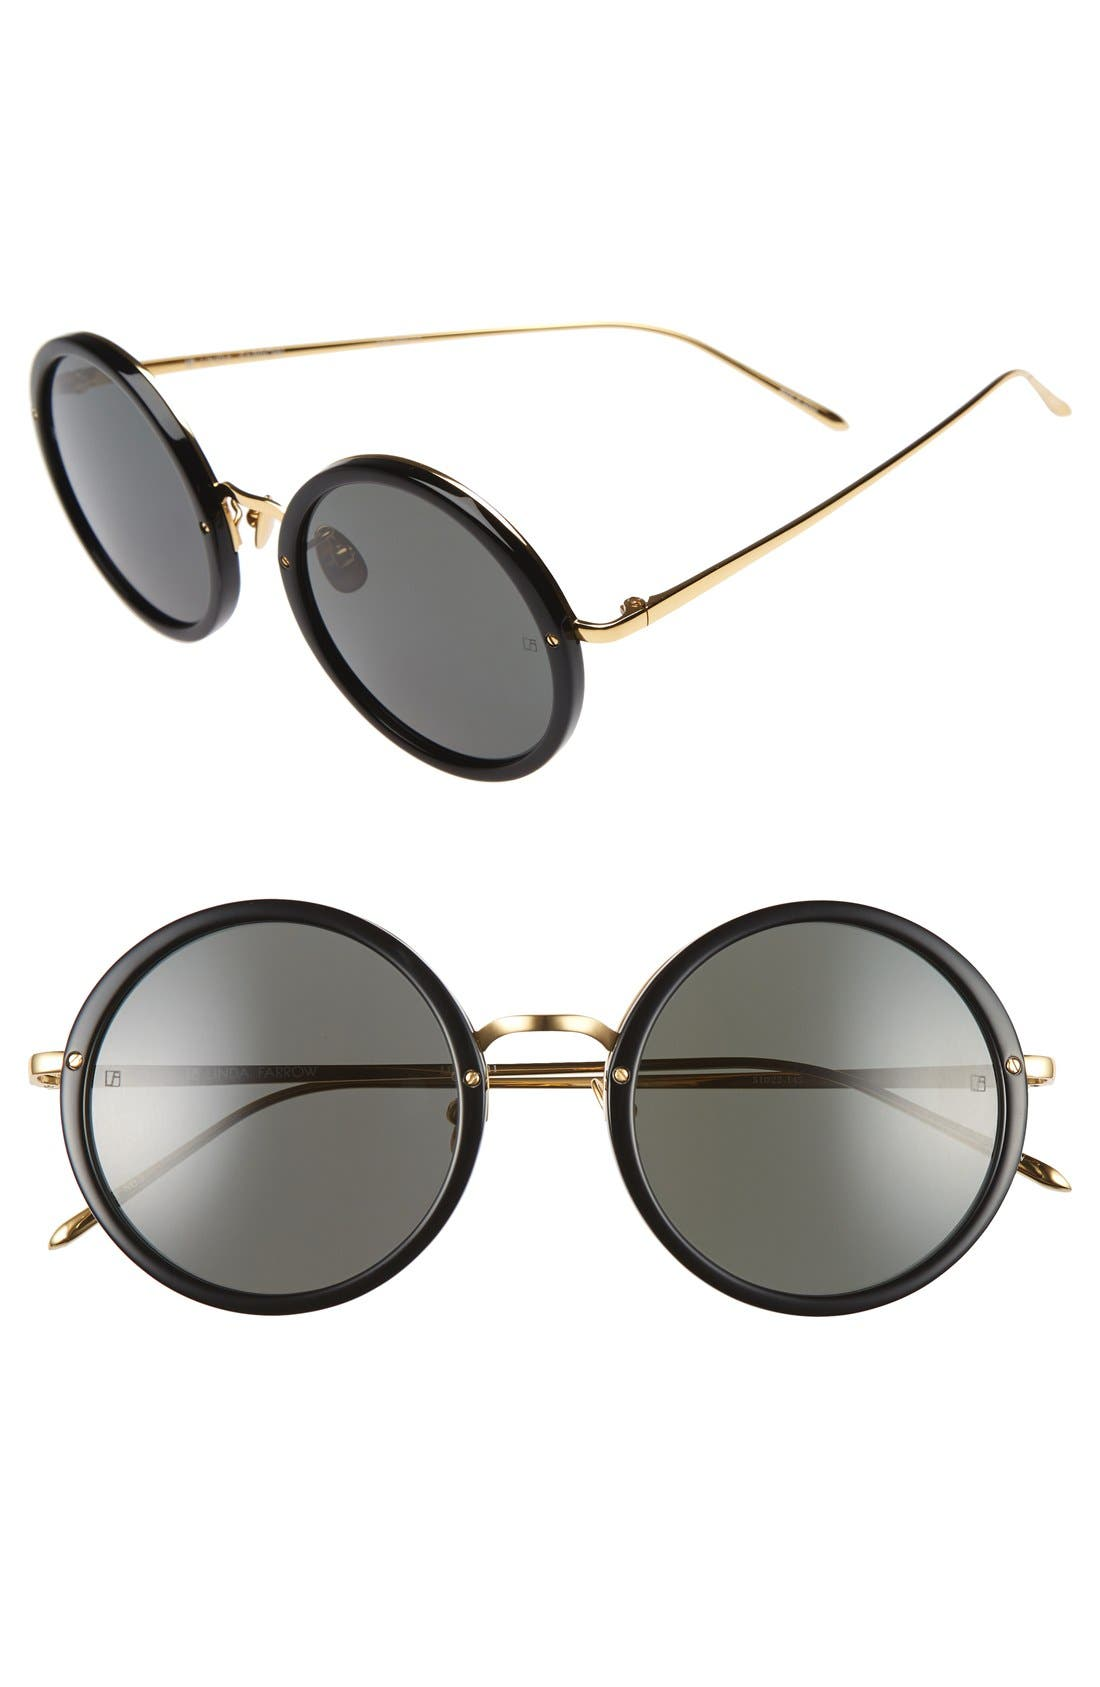 51mm Round 24 Karat Gold Trim Sunglasses,                         Main,                         color,